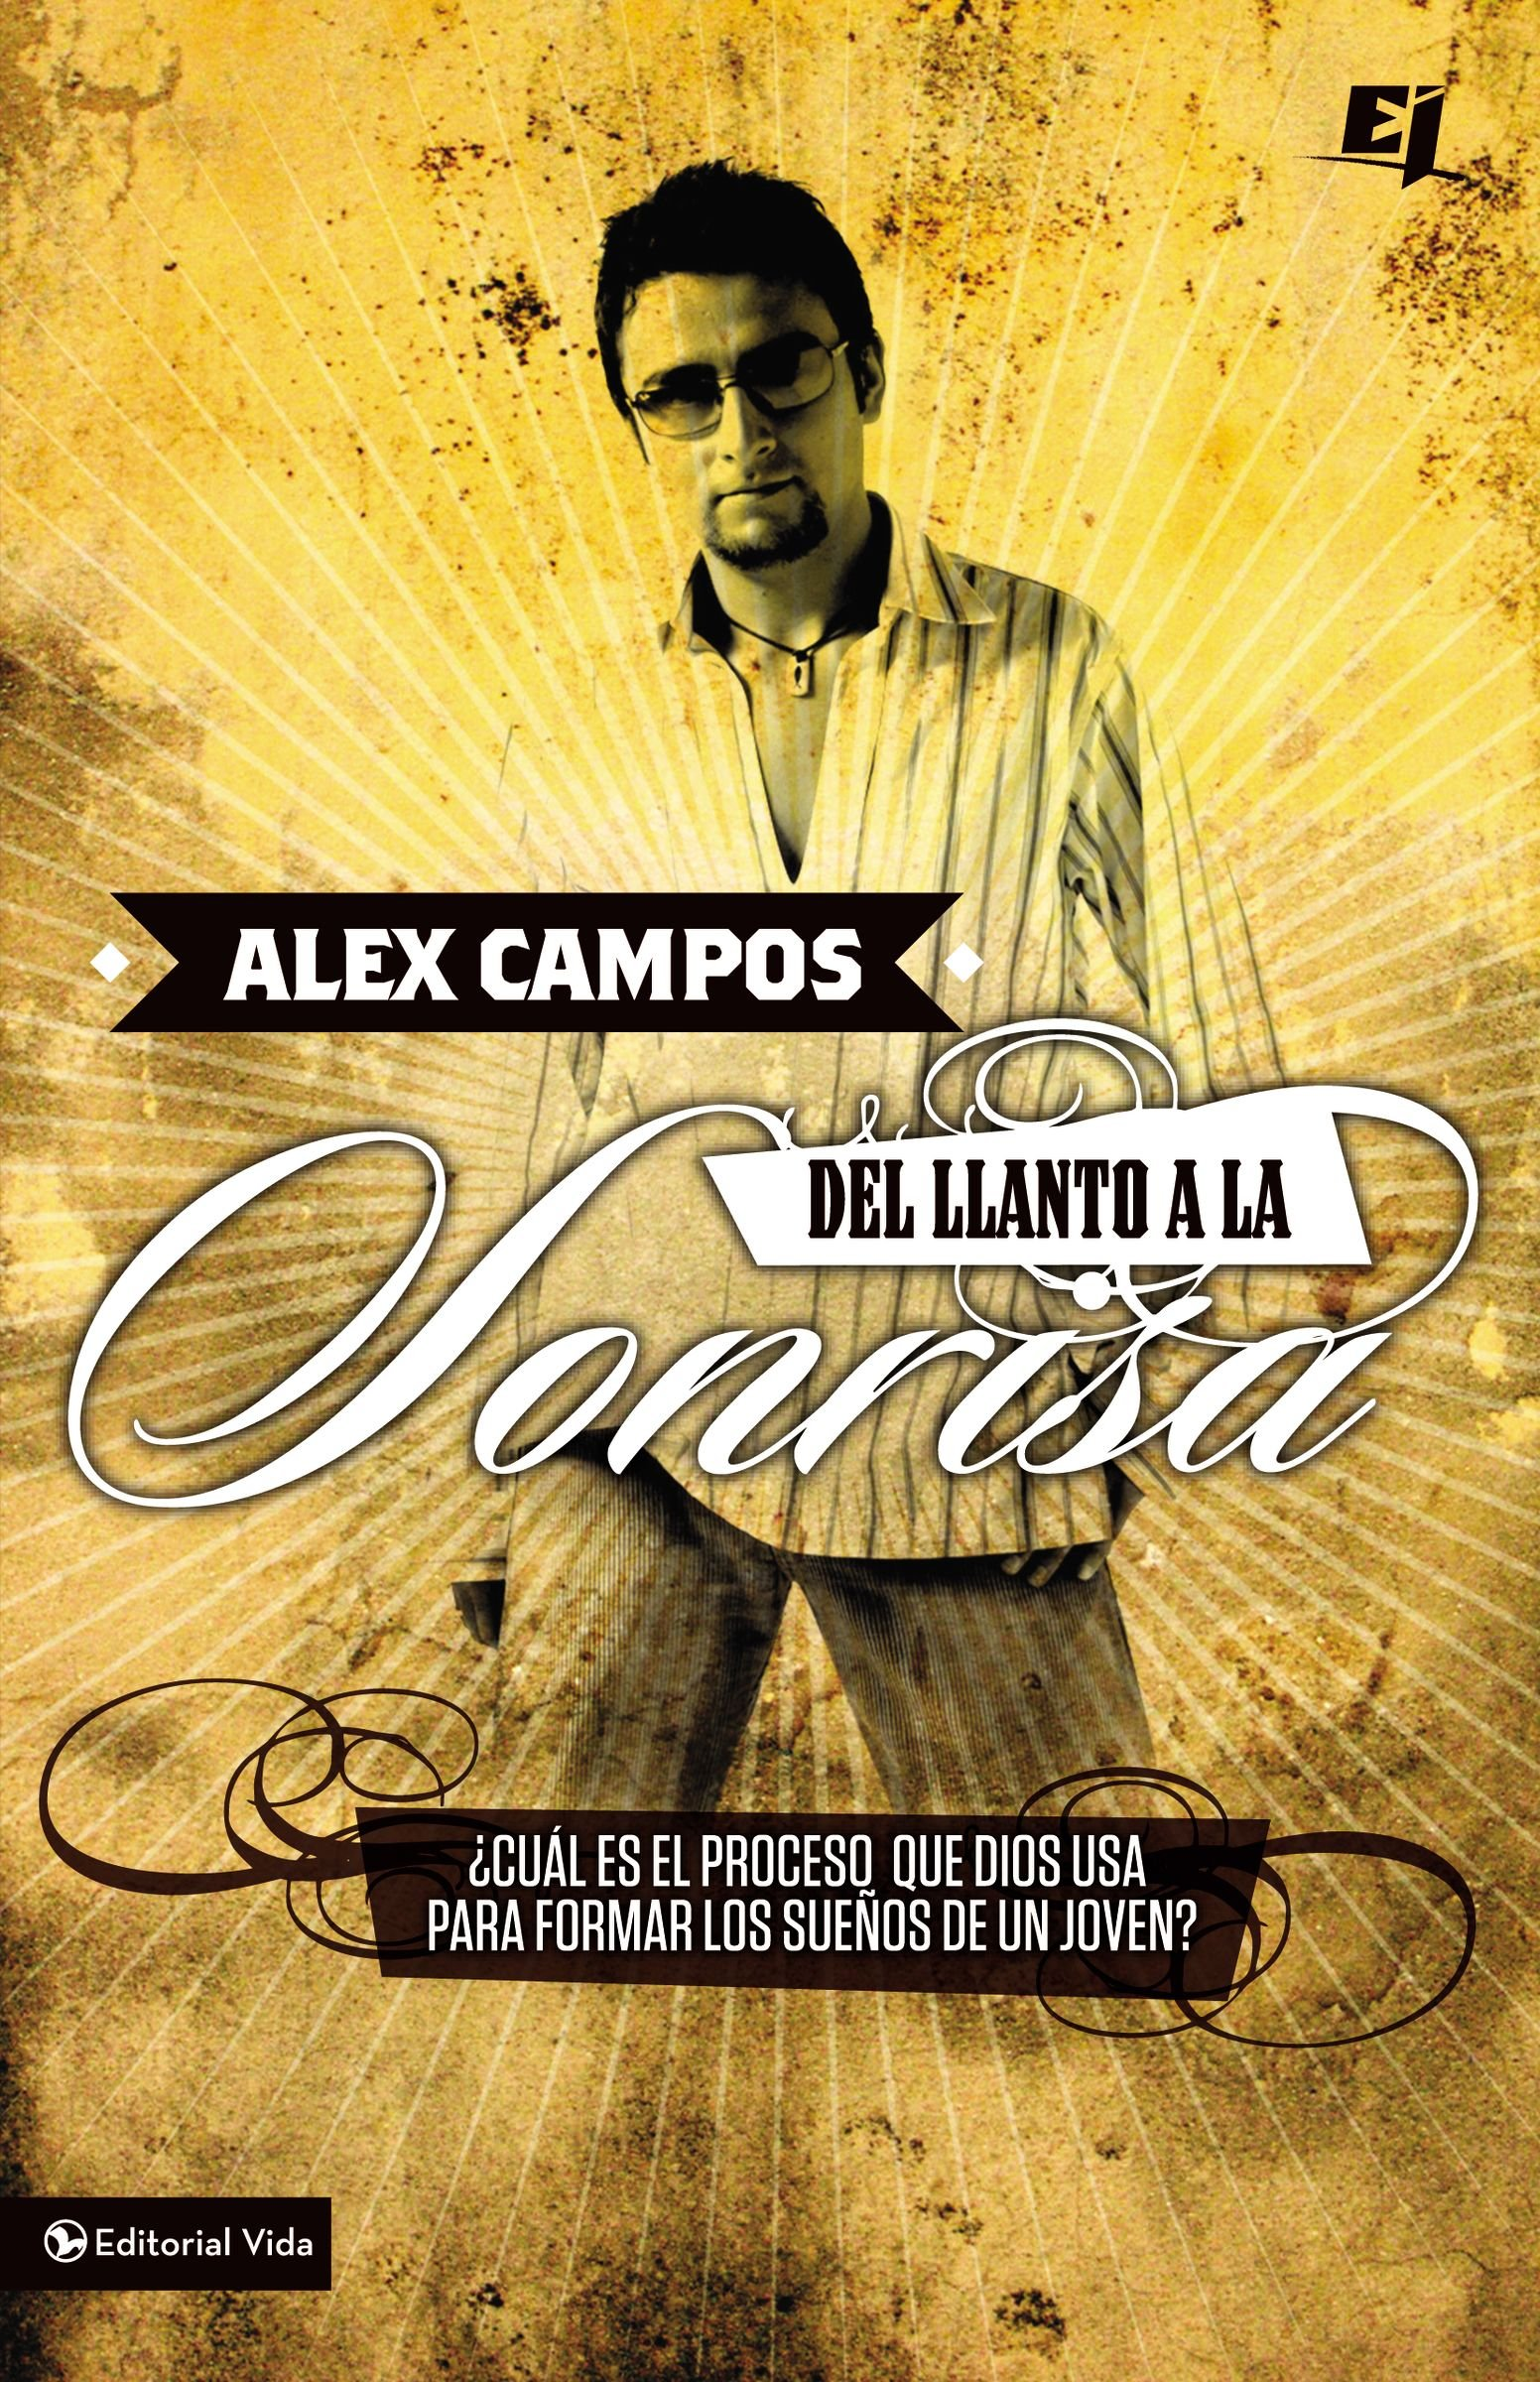 Del llanto a la sonrisa (Especialidades Juveniles) (Spanish Edition): Alex Campos: 0639390752901: Amazon.com: Books